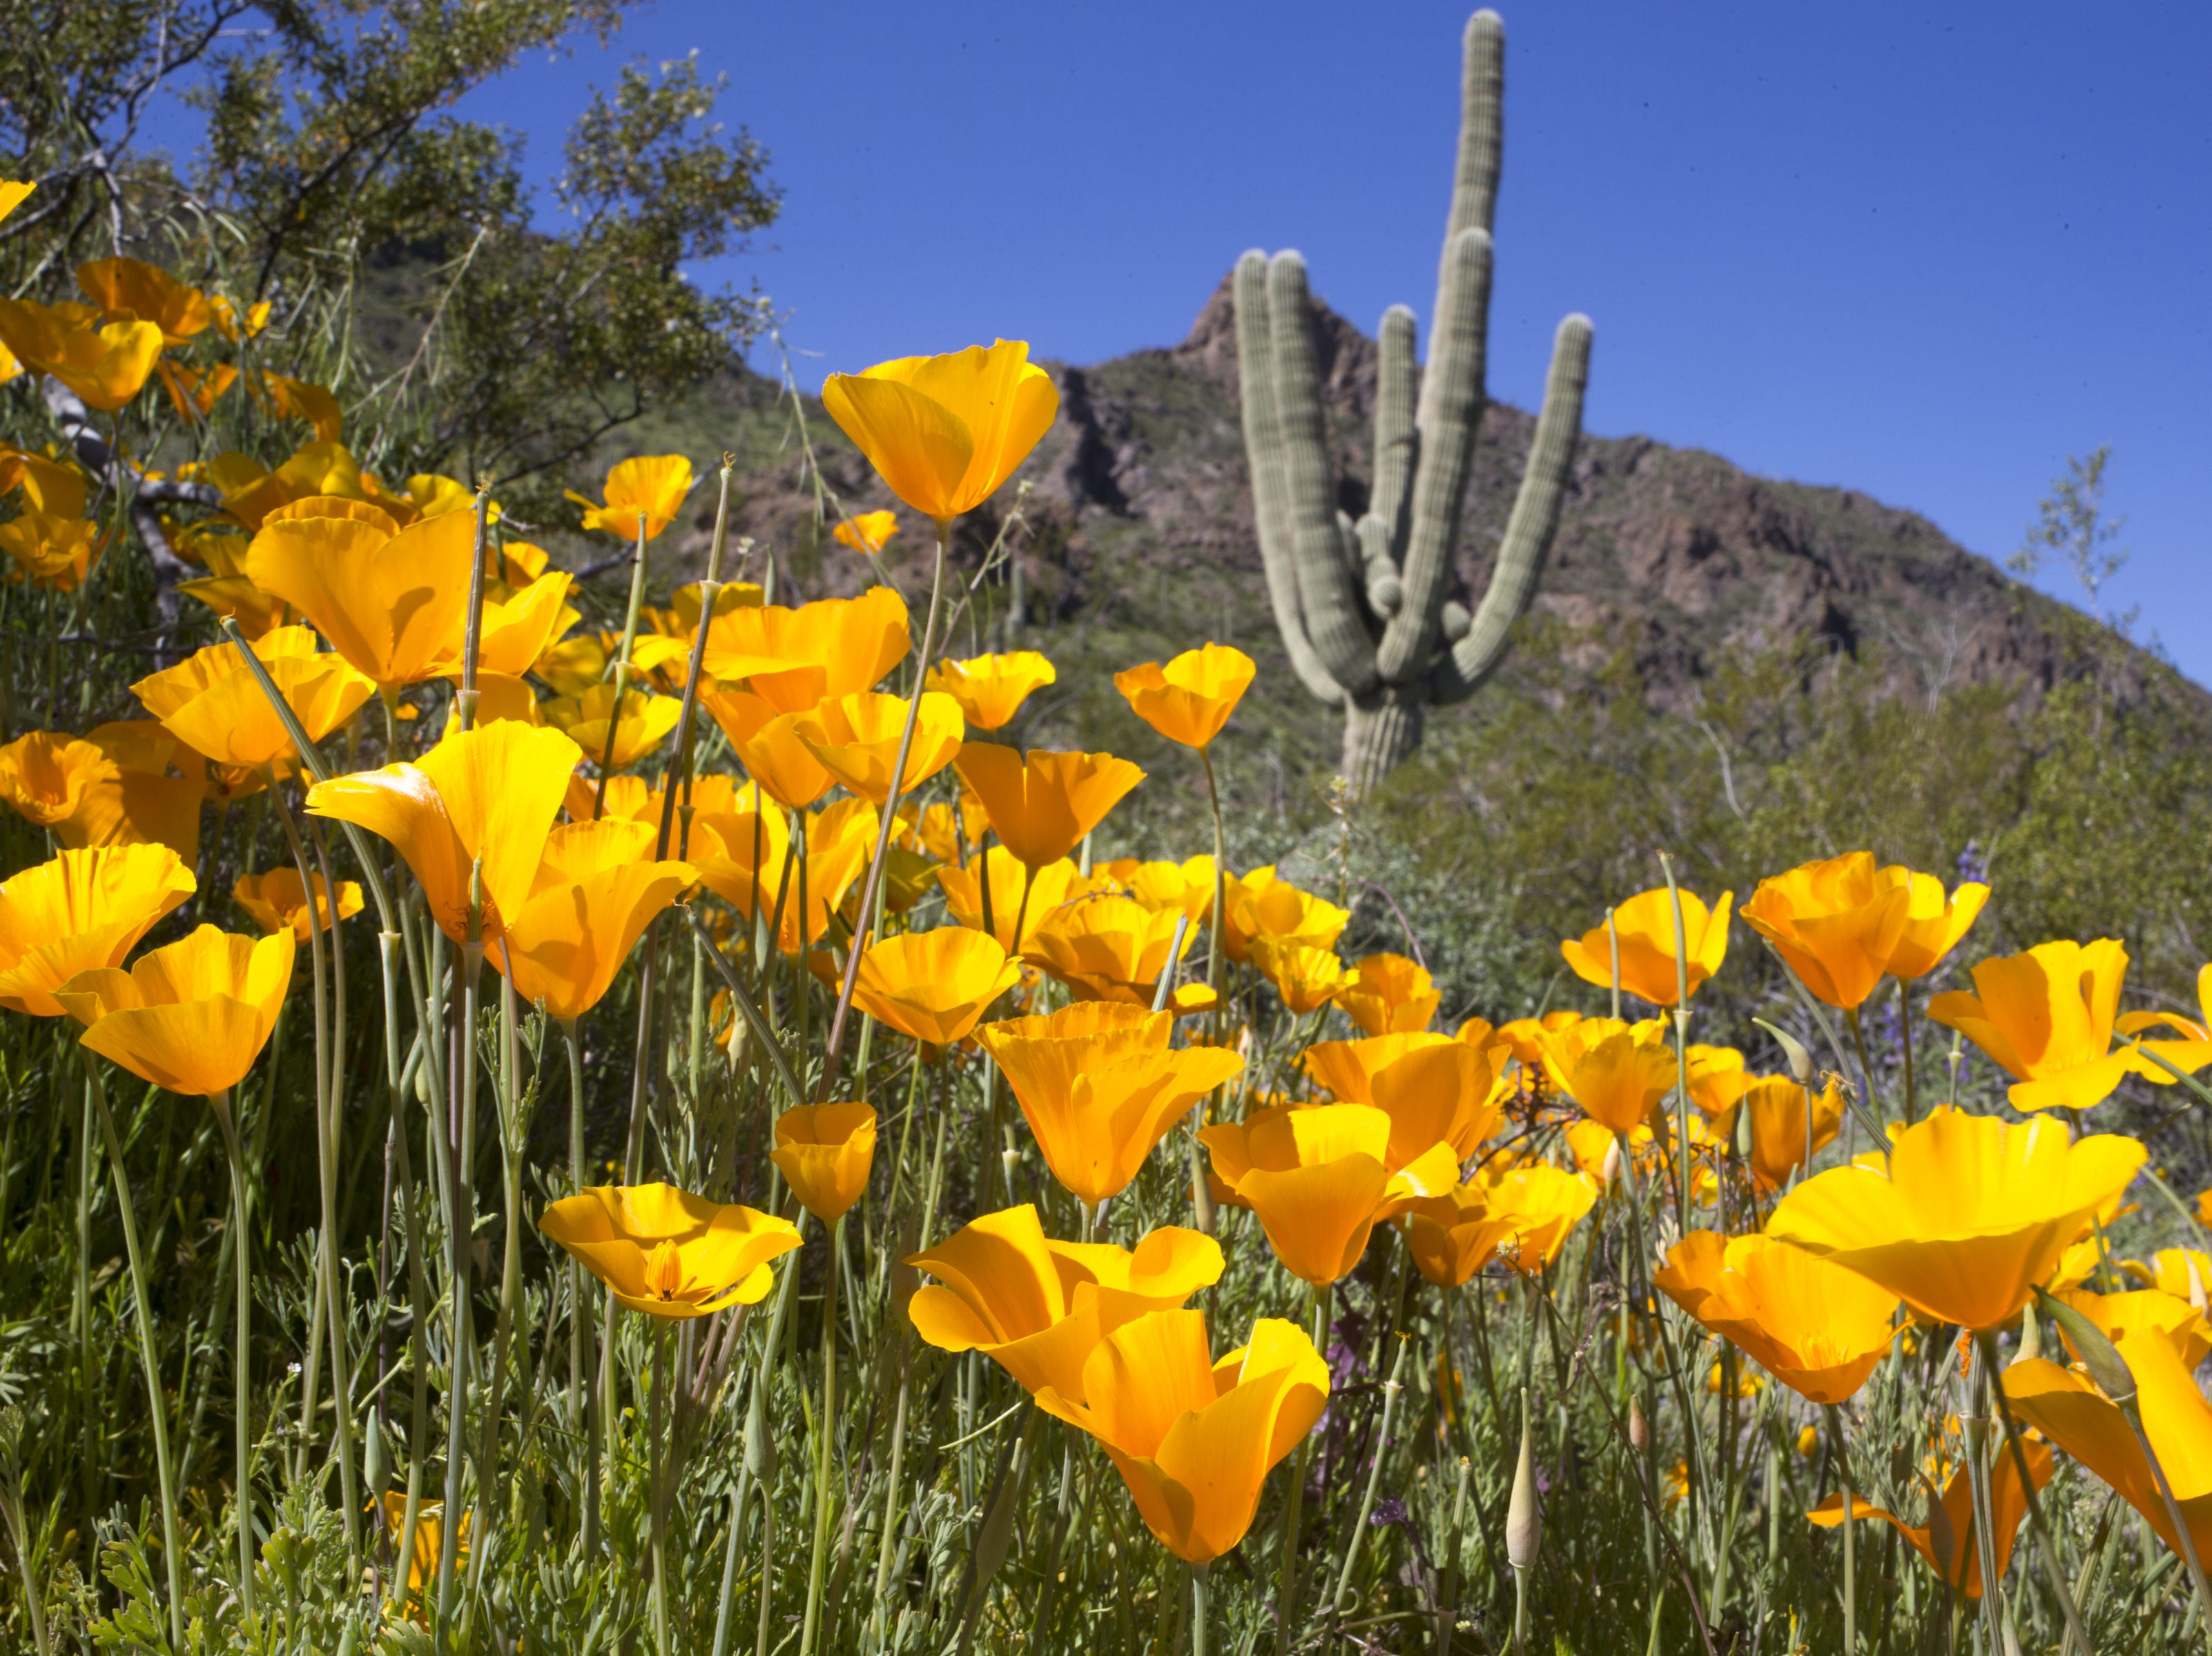 Poppies and a saguaro, March 5, 2019, at Picacho Peak State Park, Arizona.